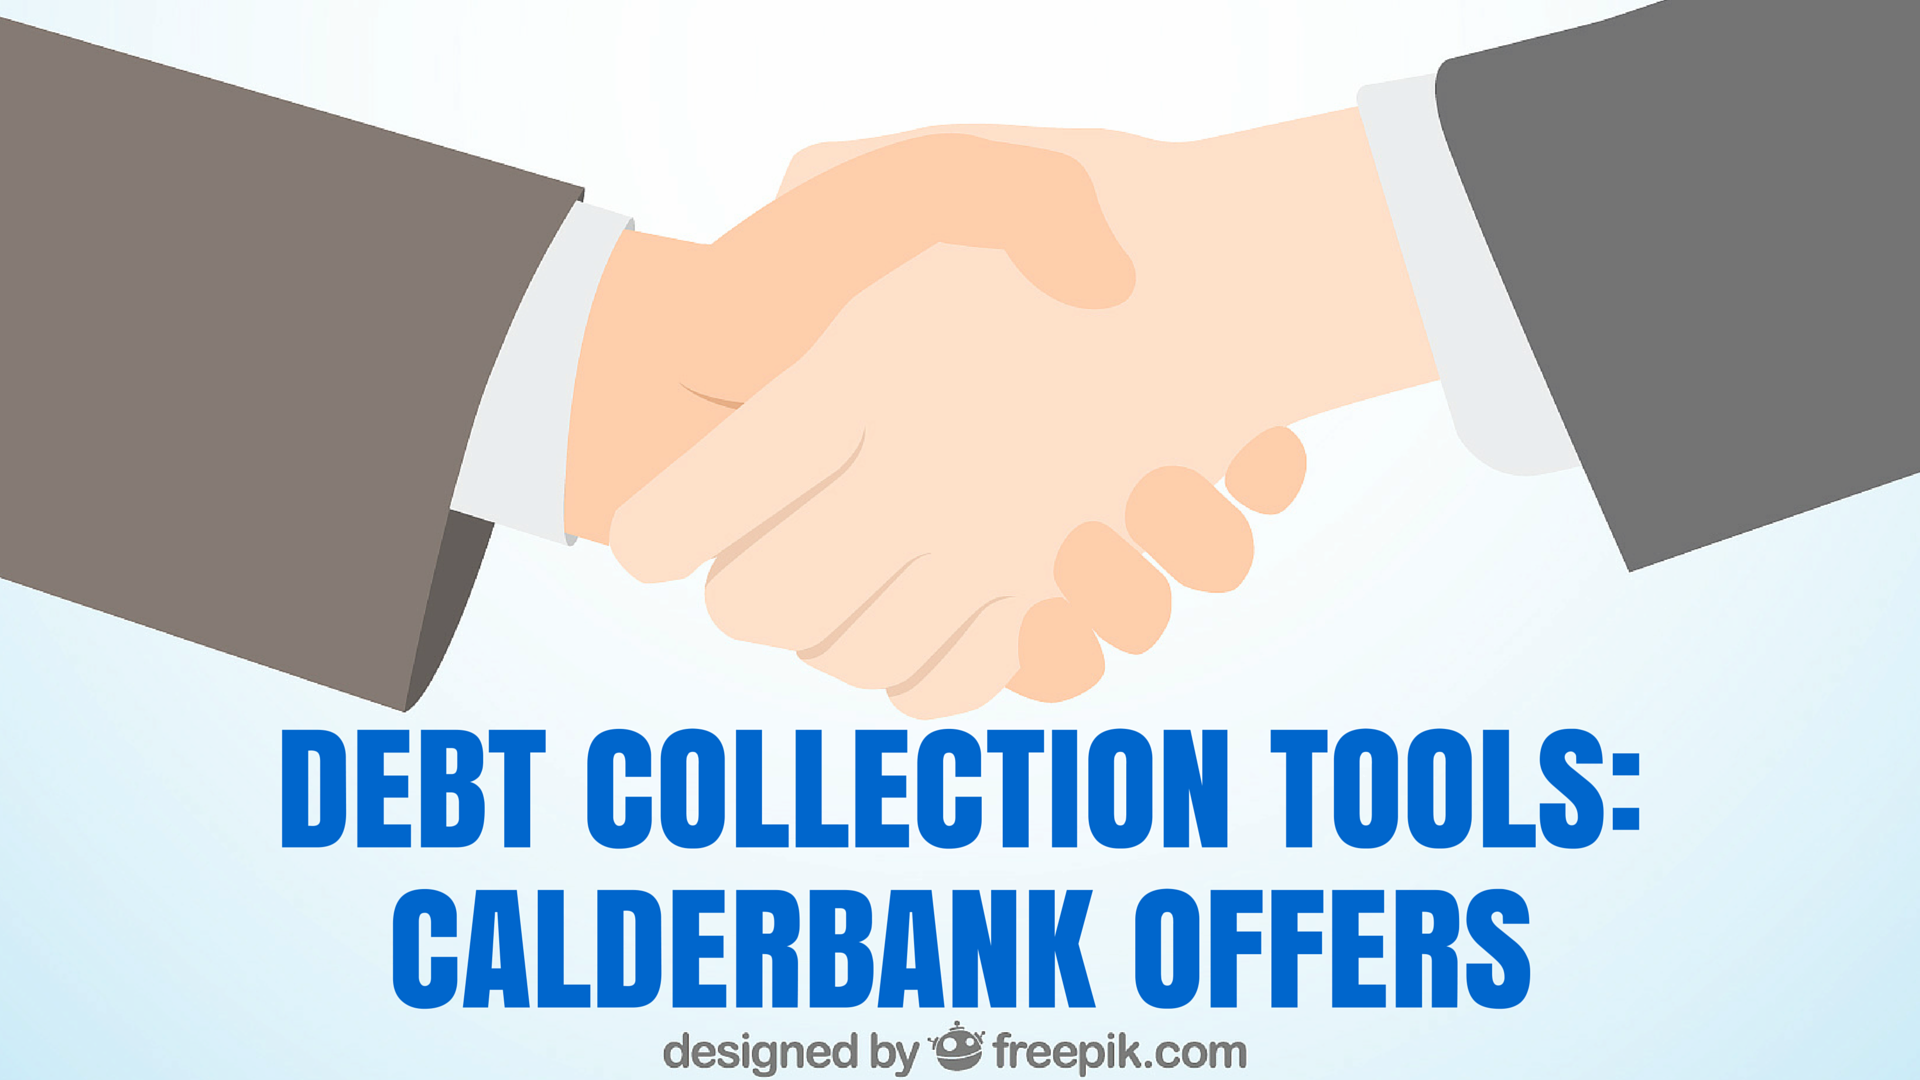 Debt Collection Tools Calderbank Offers